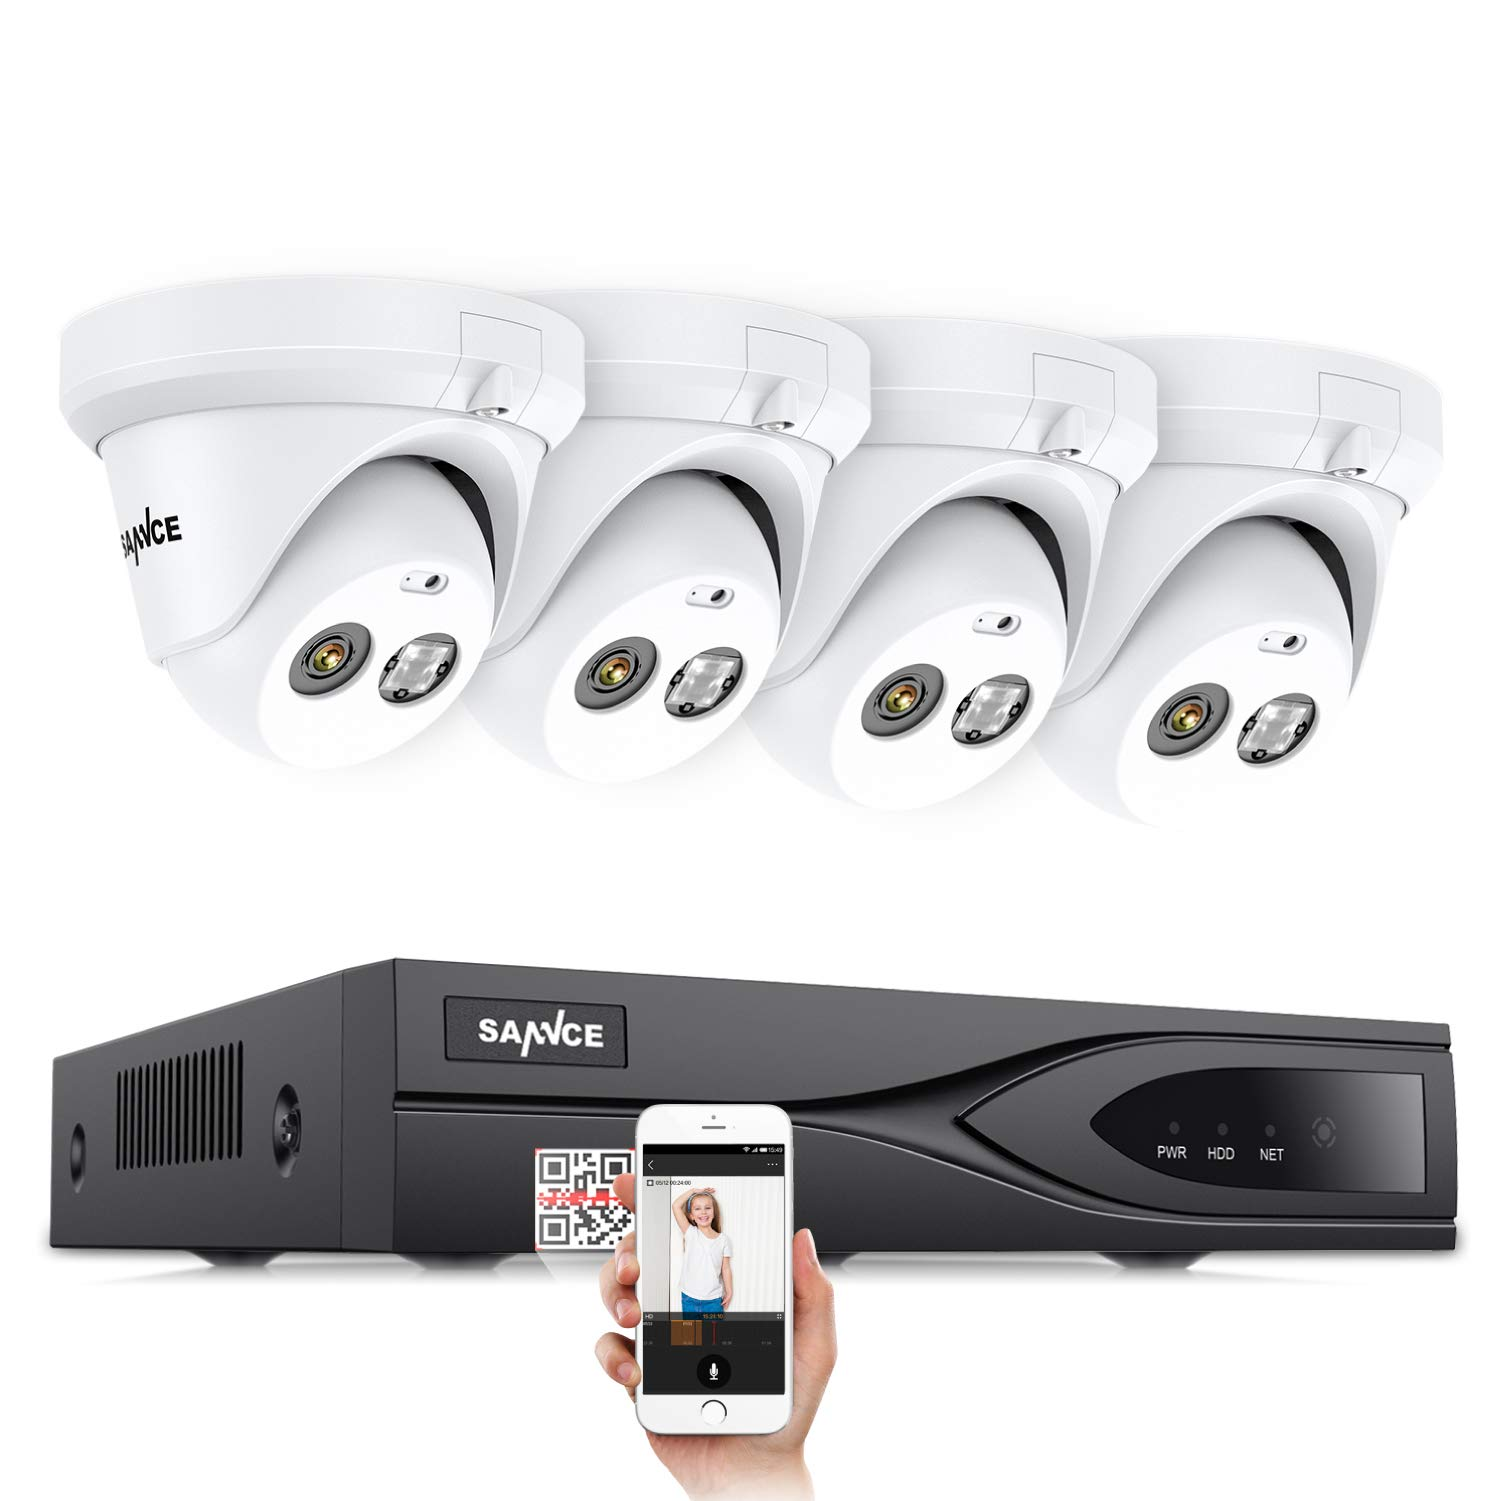 SANNCE HD 1080P PoE Security System and 4x1920TVL IP66 Weatherproof Surveillance IP Cameras, Voice Recording, 100ft Night Vision, Power Over Ethernet,Scan QR Code Quick Remote Access (No Hard Drive)